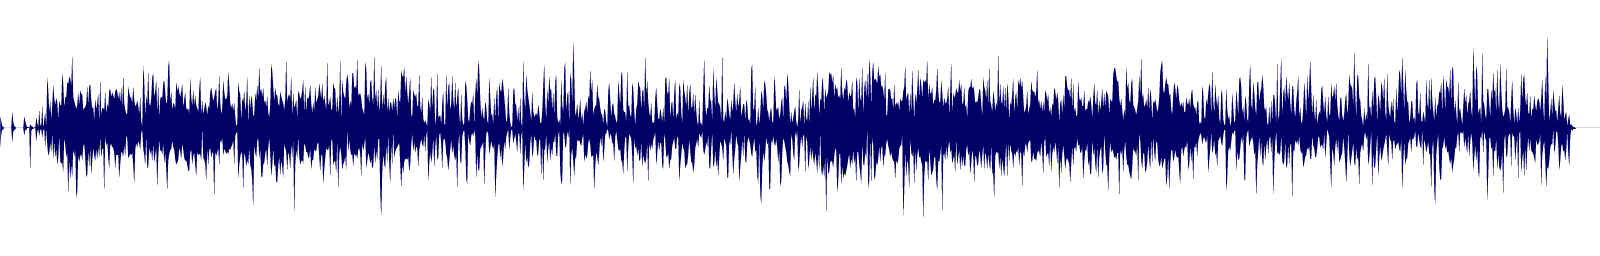 waveform of track #95252